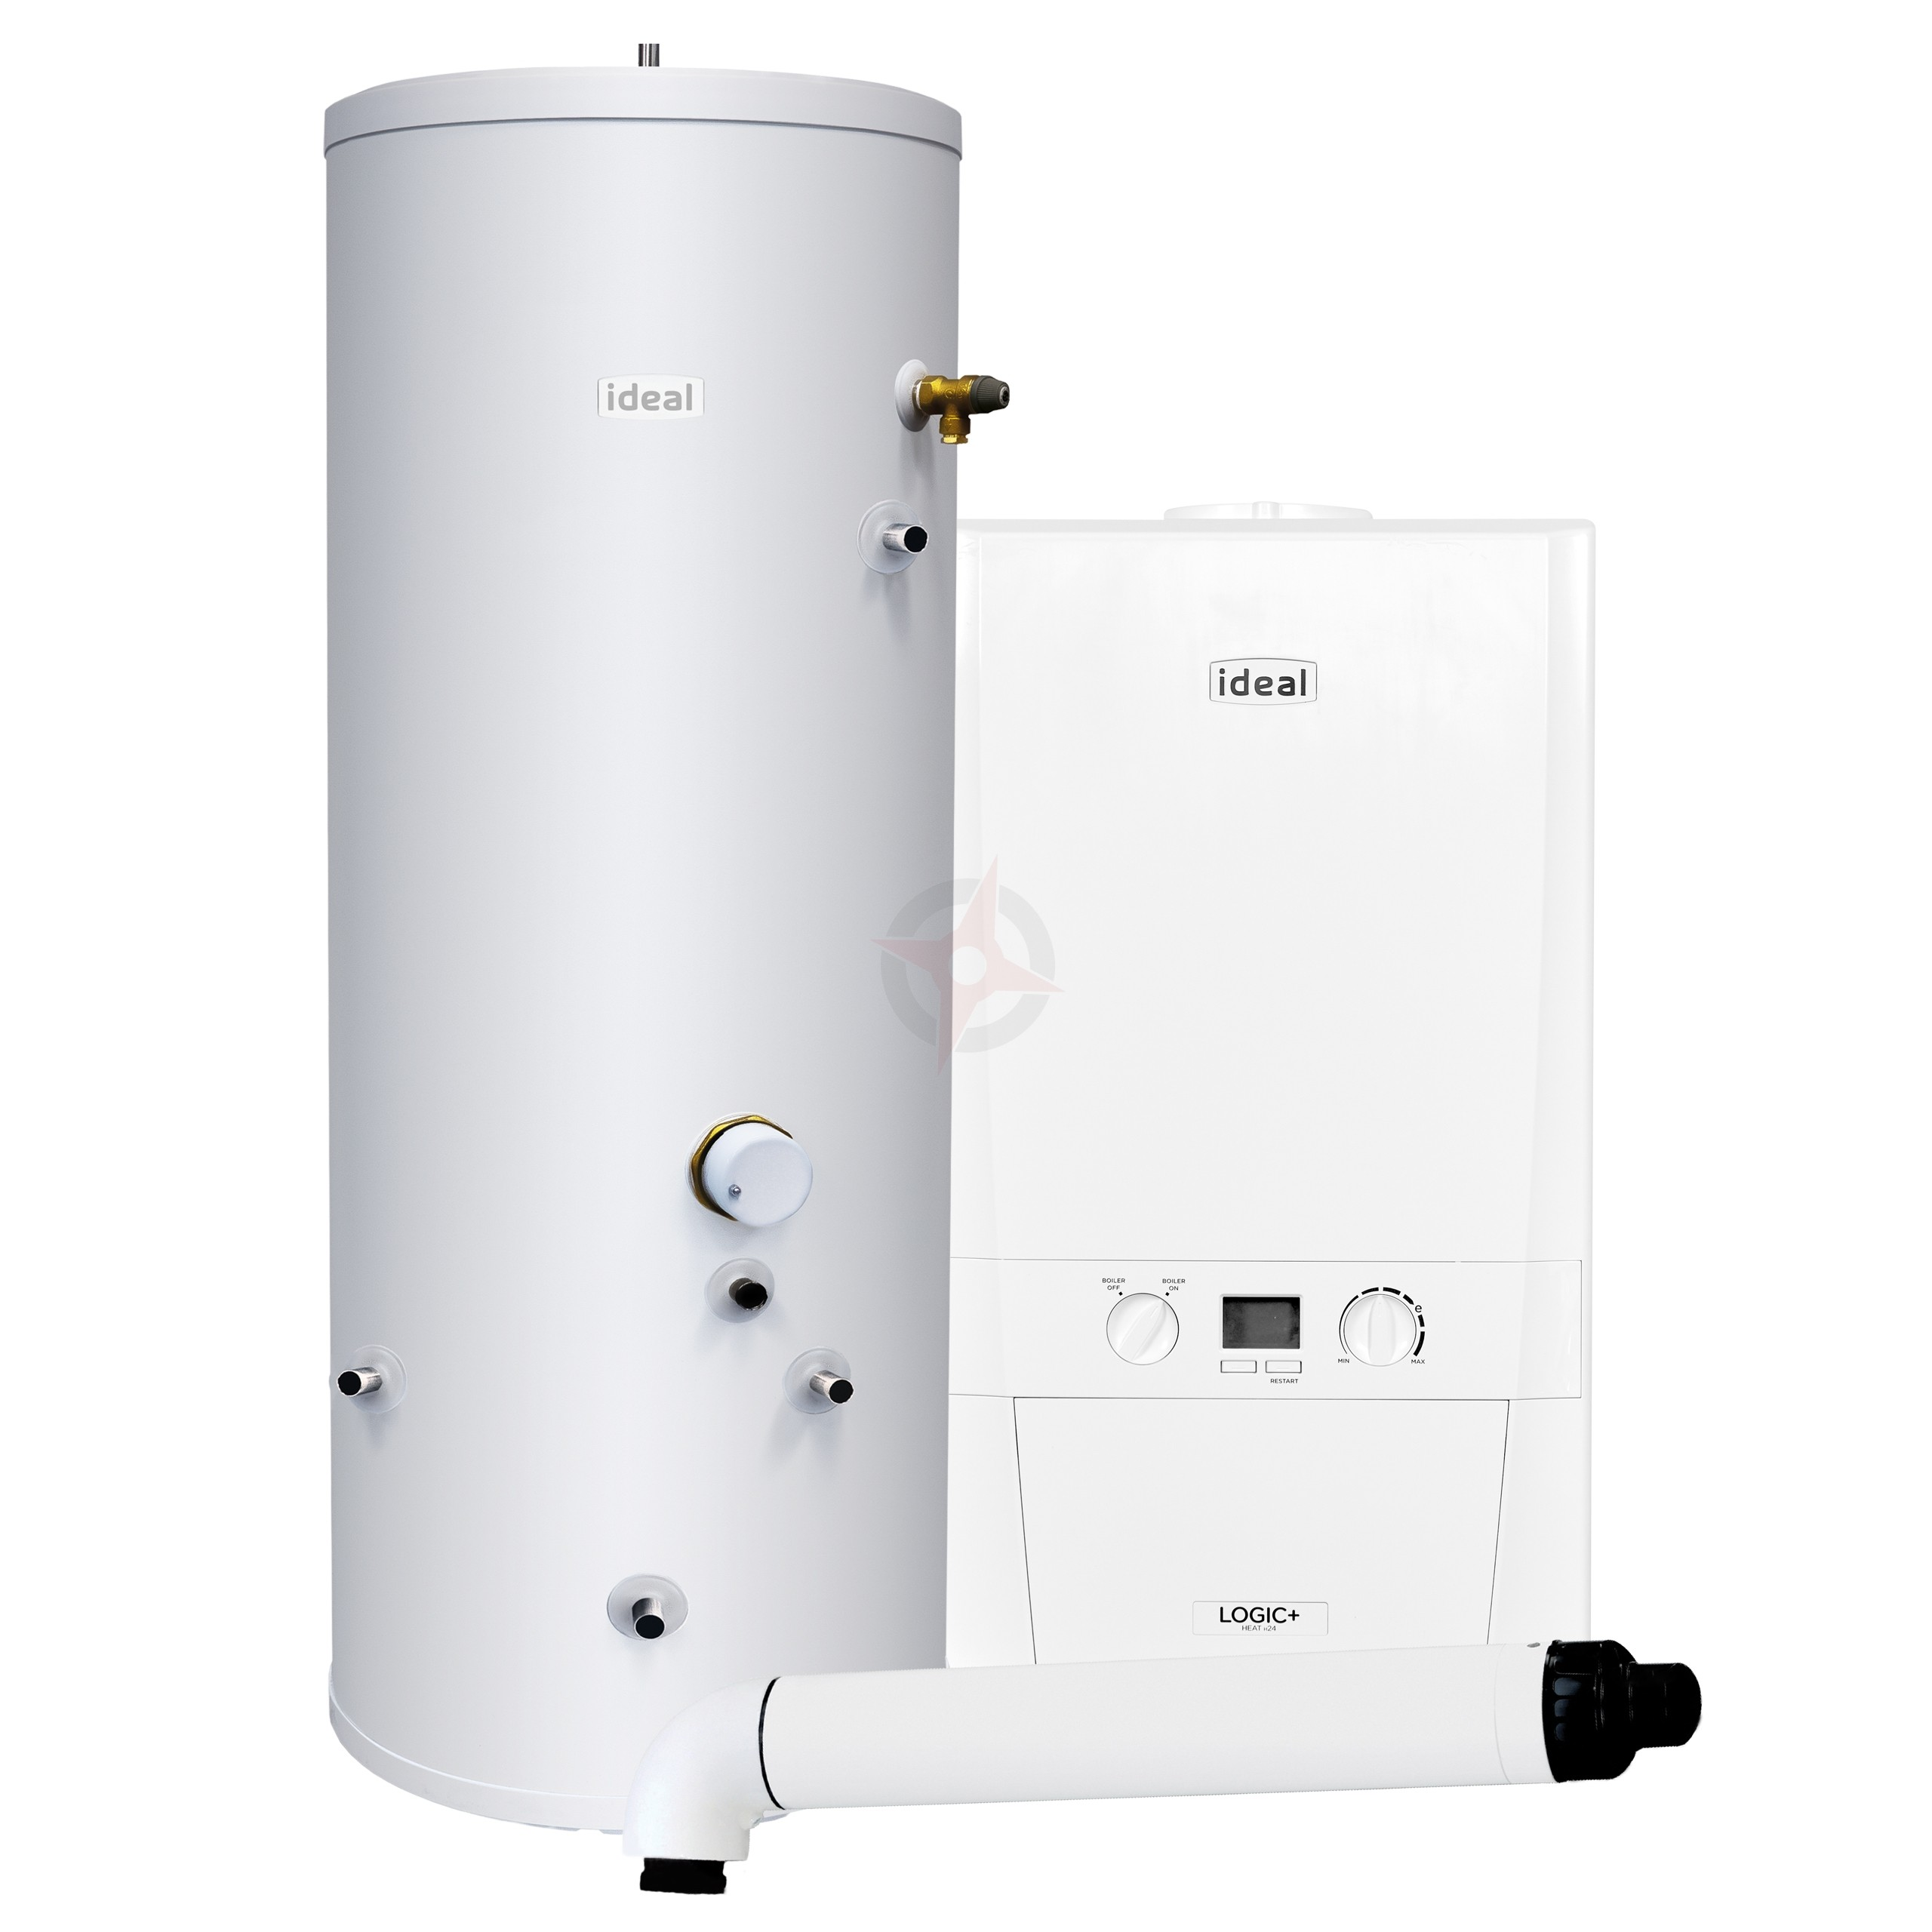 Ideal Logic+ 24 Heat Only Boiler, Horizontal Flue & Indirect Cylinder